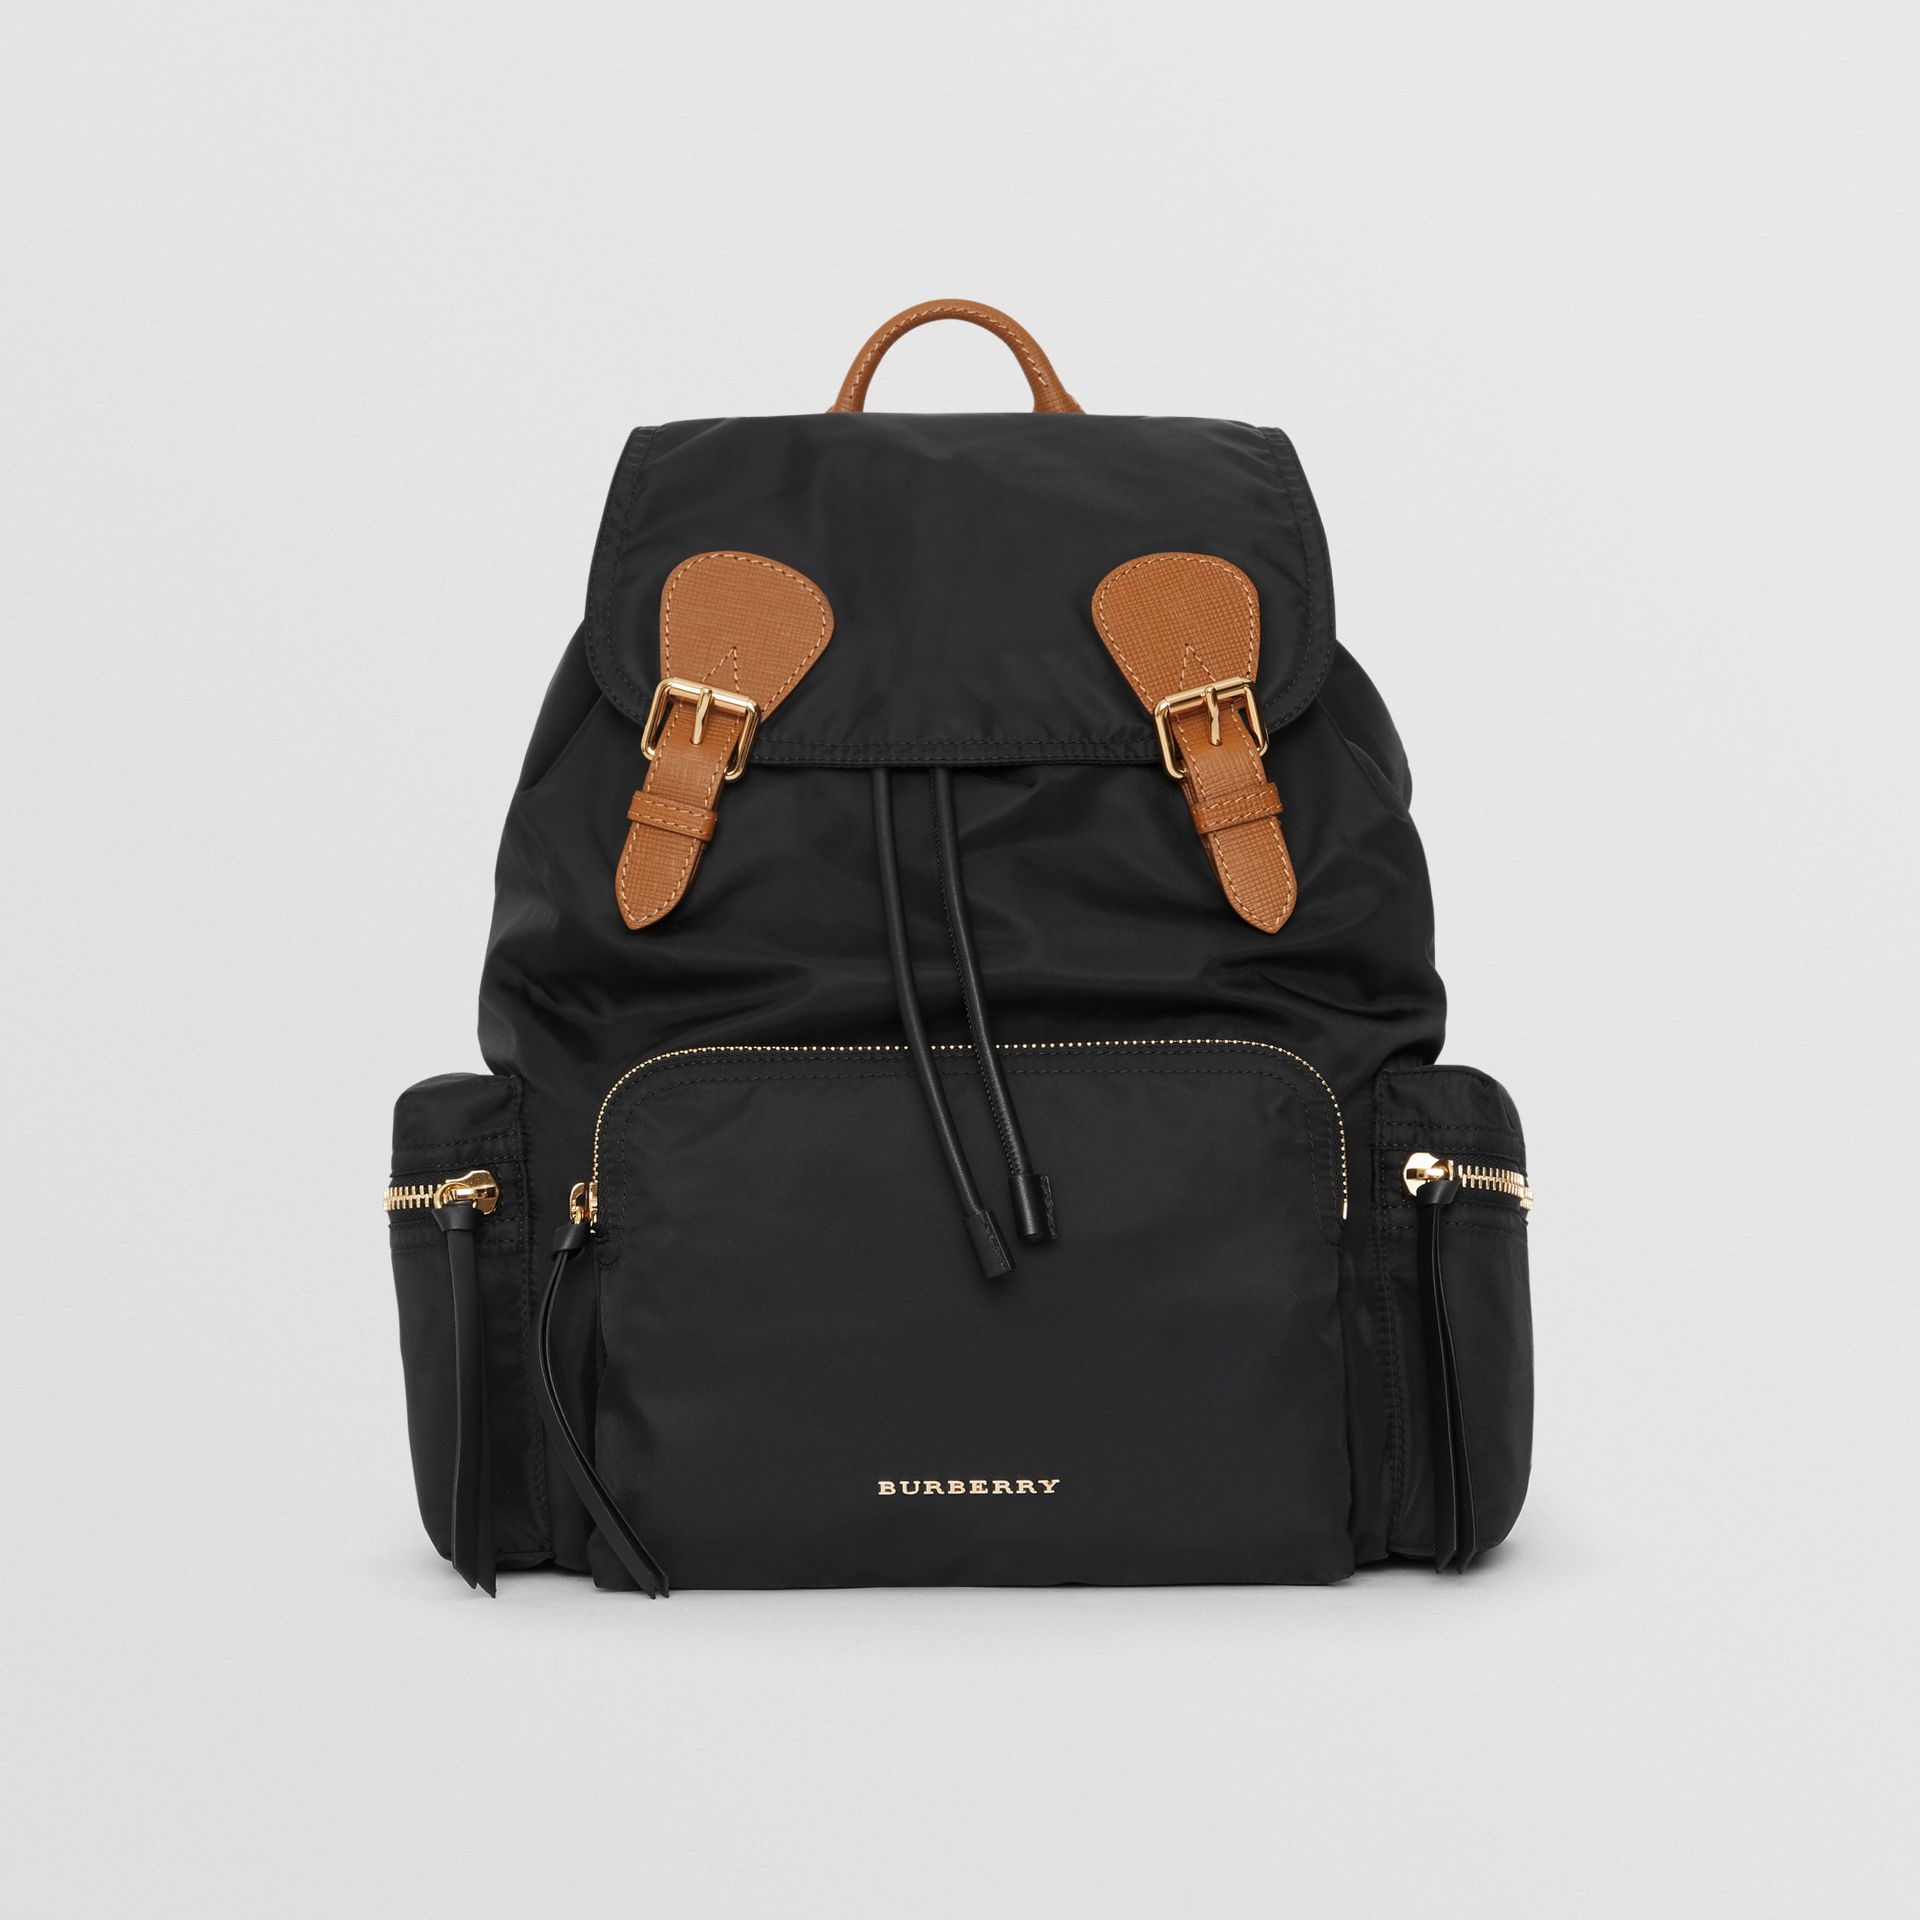 Grand sac The Rucksack en nylon technique et cuir (Noir) - Femme | Burberry - photo de la galerie 0